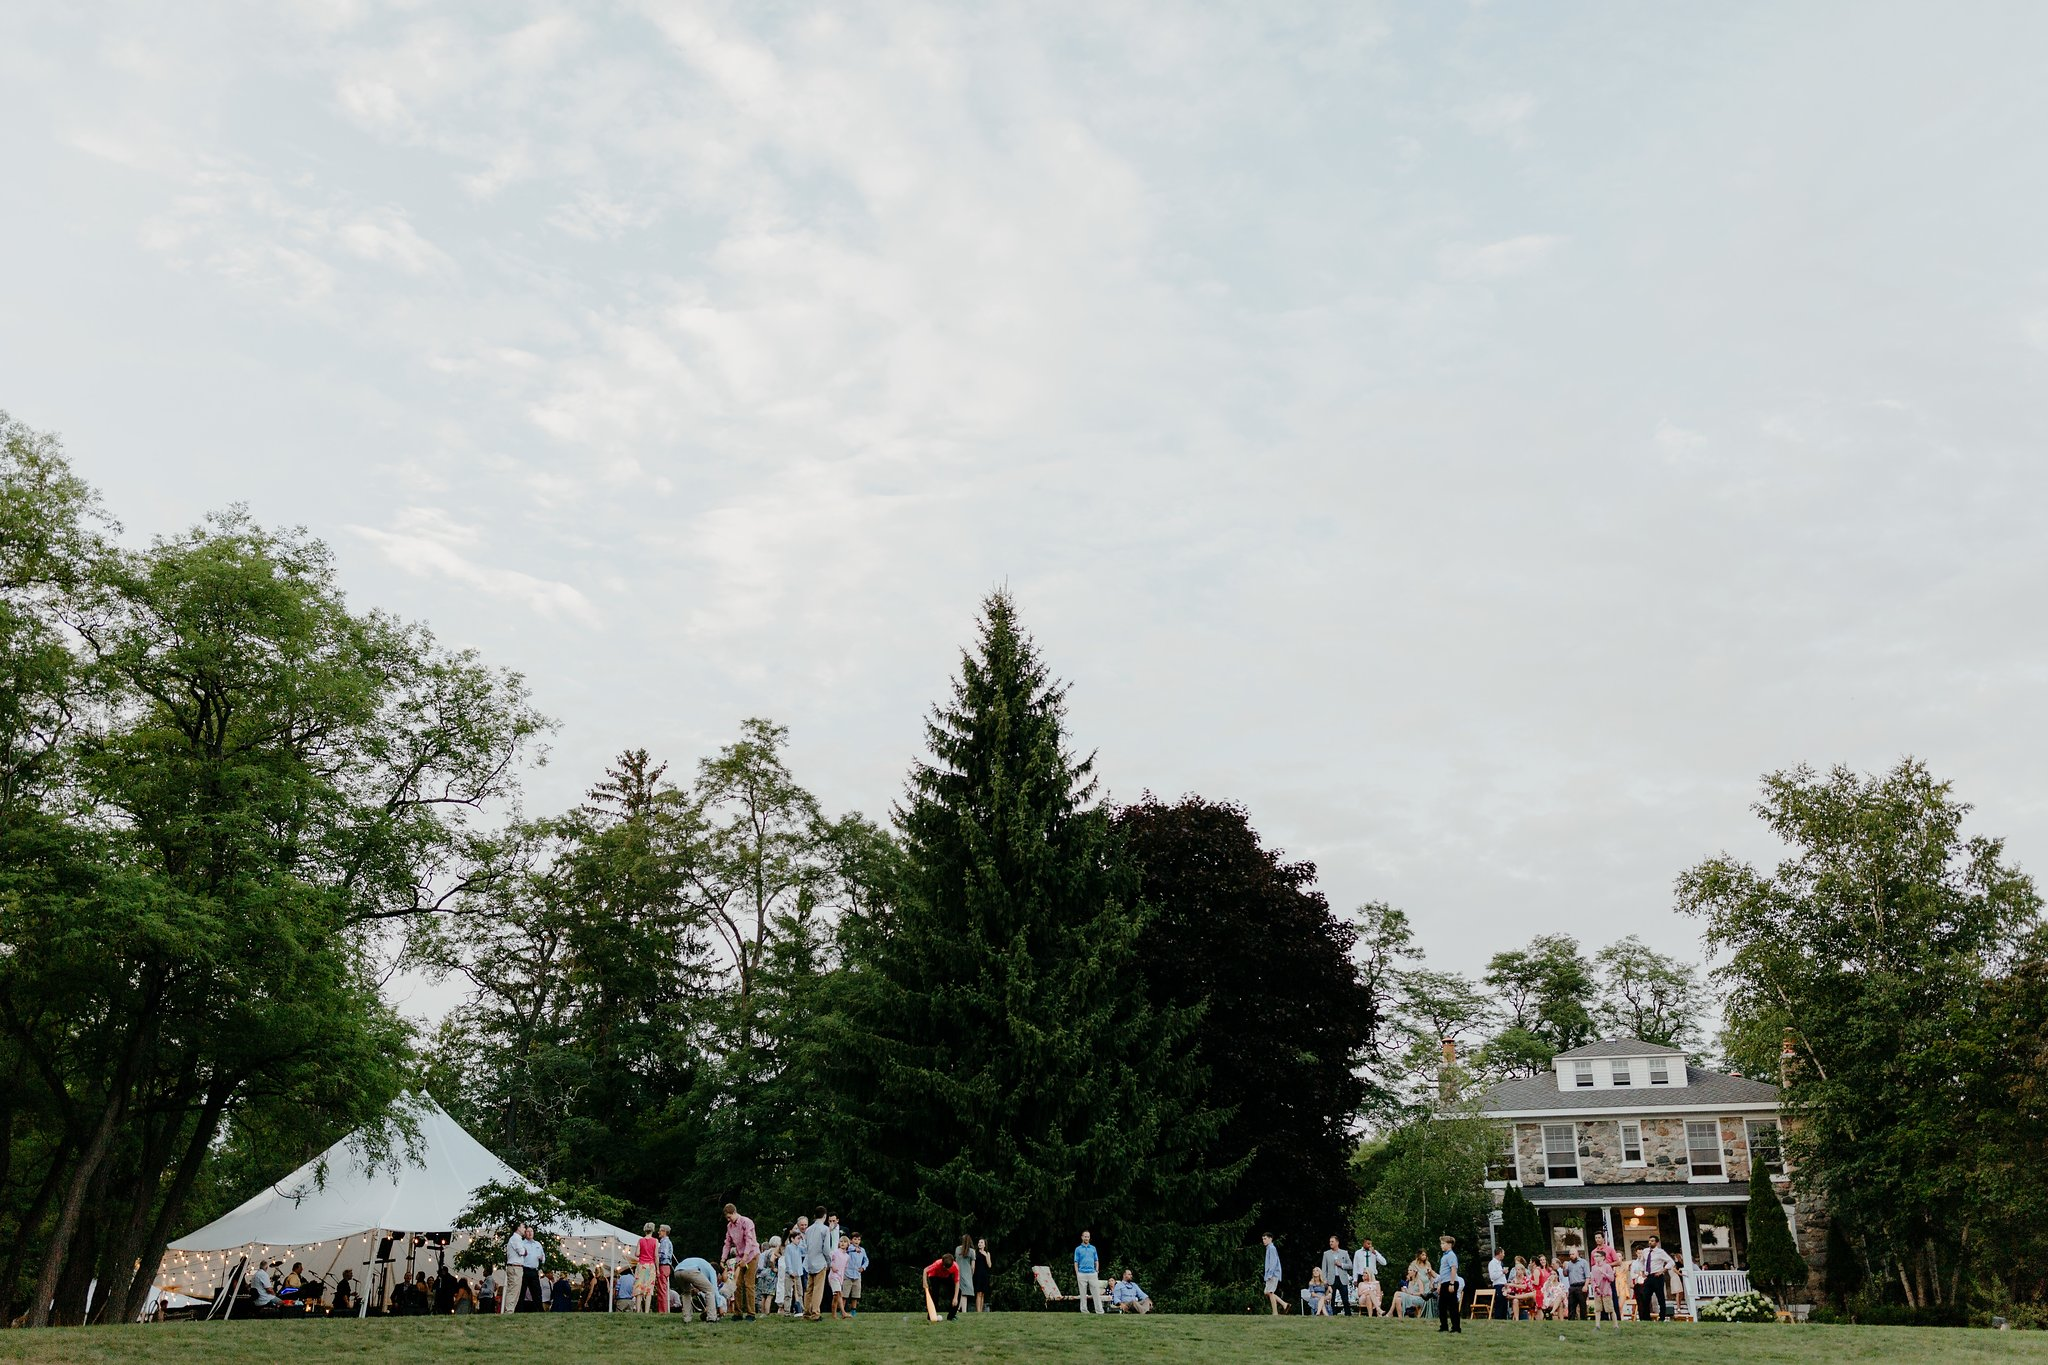 Relaxed August Wedding   Boo & Jeremy of Cincinnati, OH celebrated on August 4, 2018 with 150 family and friends. Priorities were high quality tapas food for dinner, drinks and dancing. All the children enjoyed lawn games!